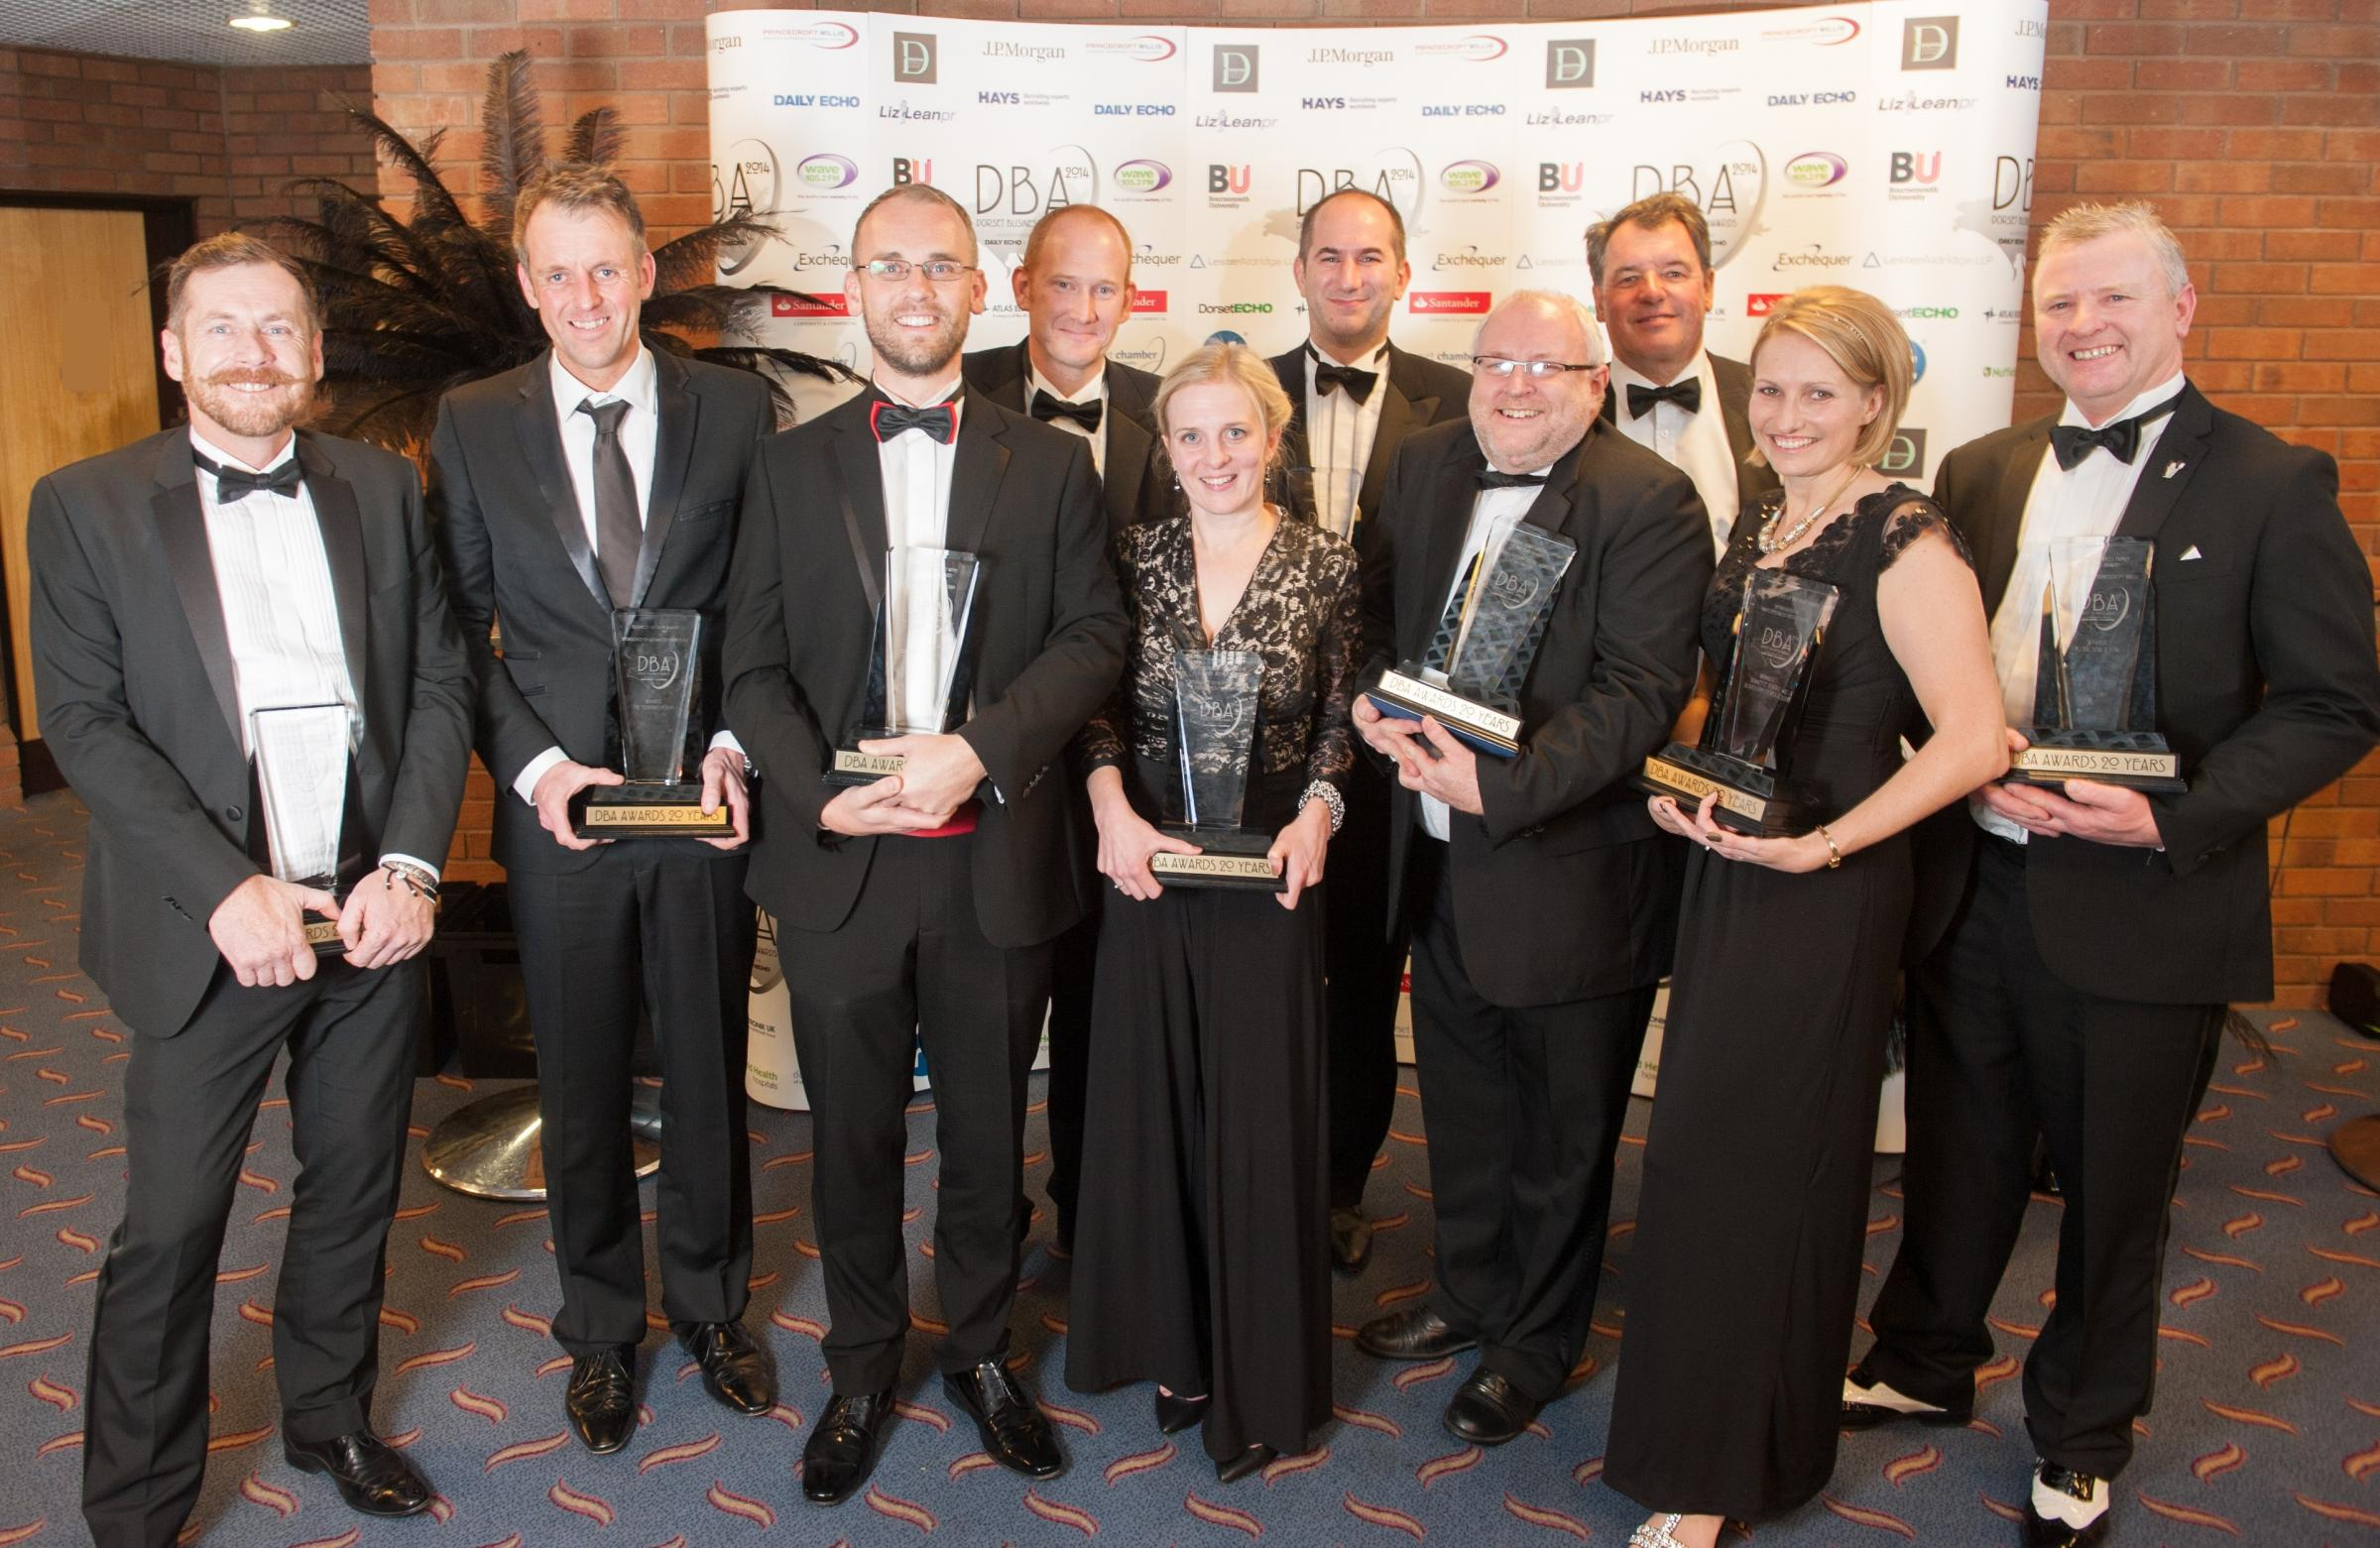 Last year's winners at the Dorset Business Awards